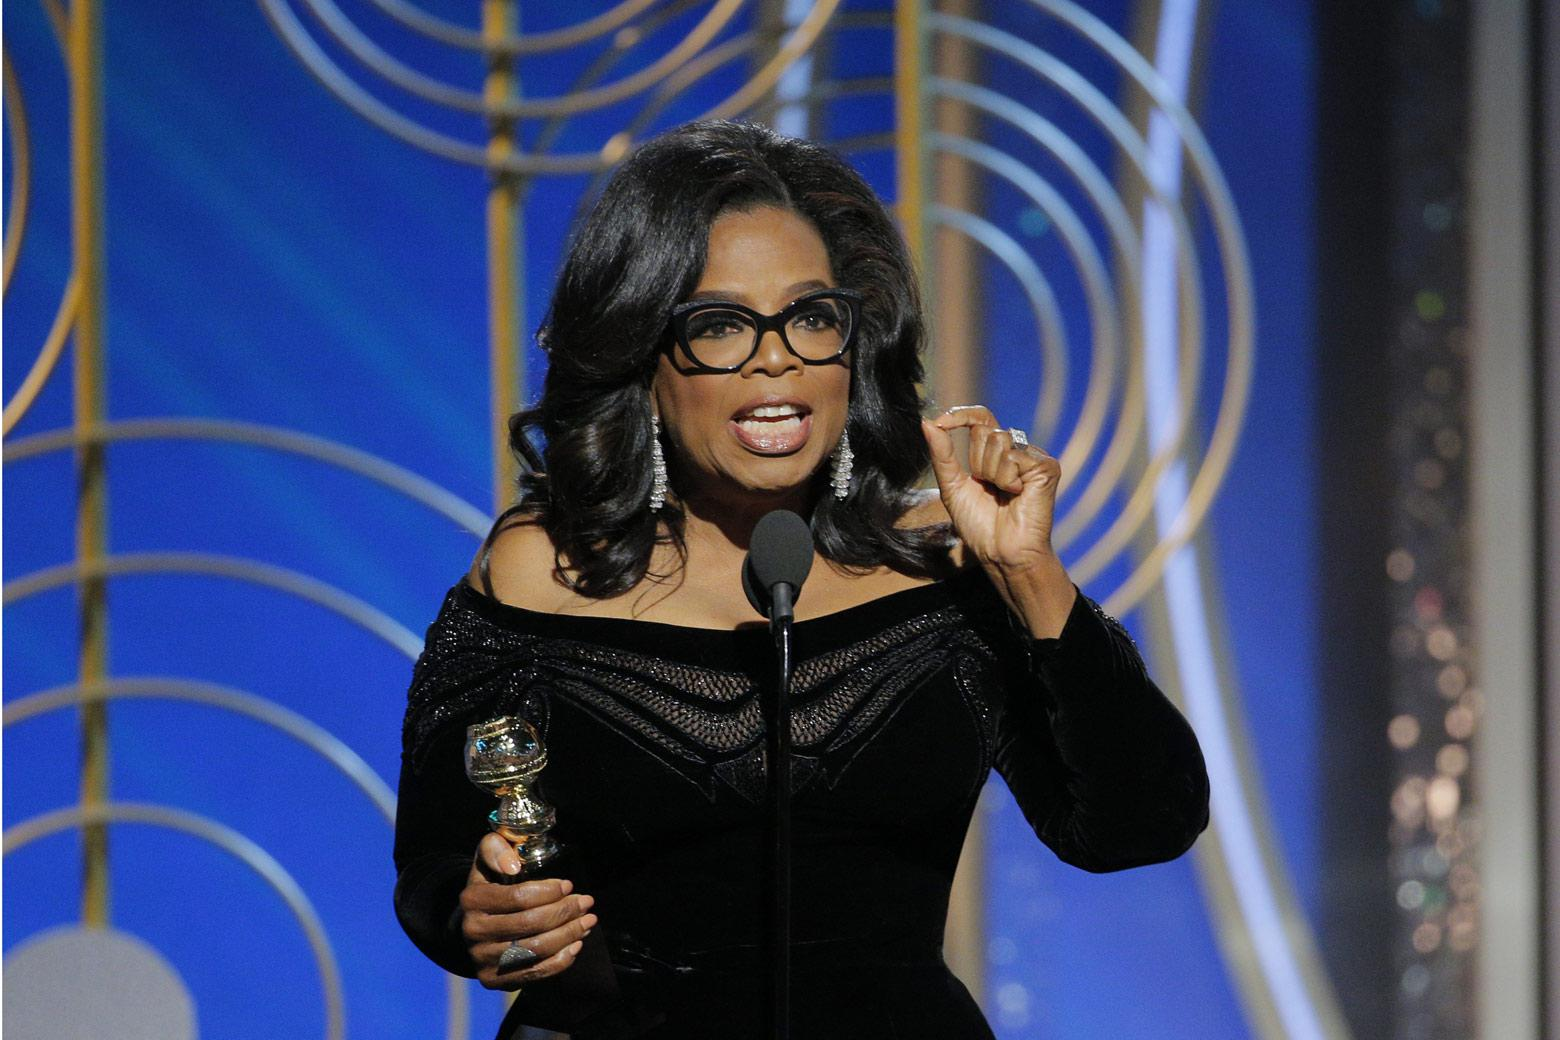 People Are Completely Missing the Point of Oprah's Amazing Golden Globes Speech